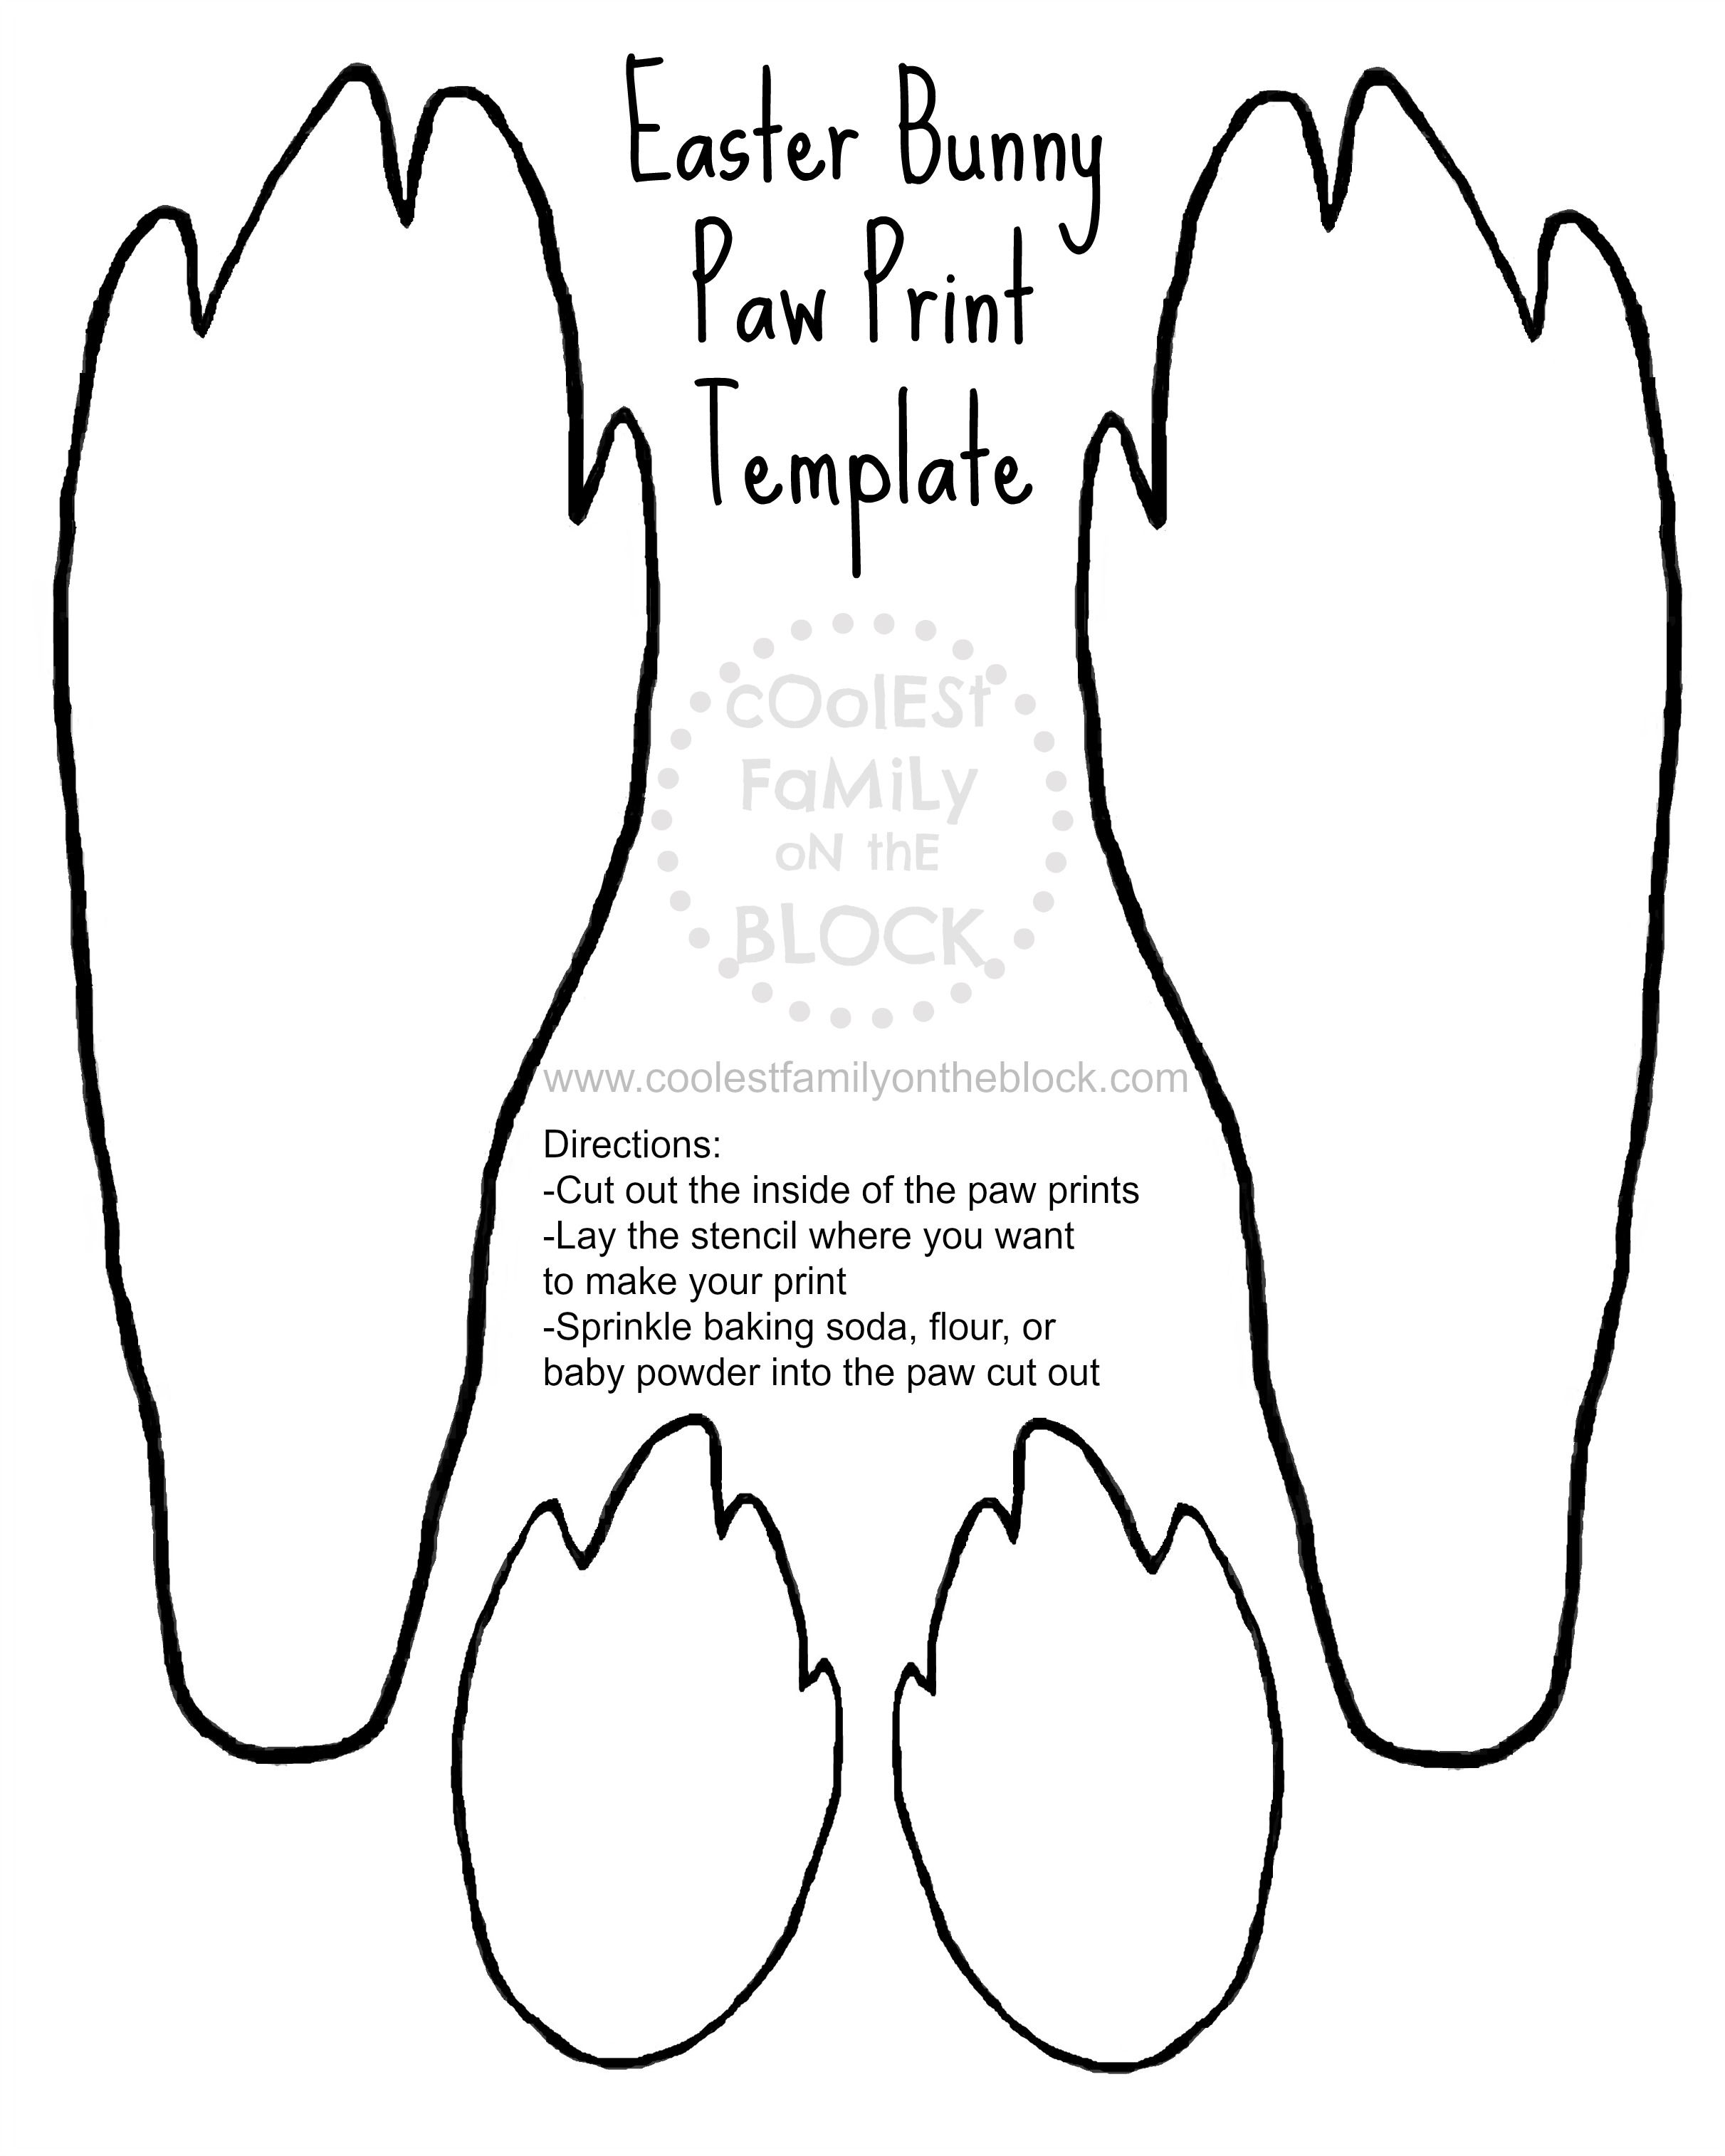 Free Printable Easter Bunny Paw Prints Template Front And Back Paws Stencil Footprint Trail